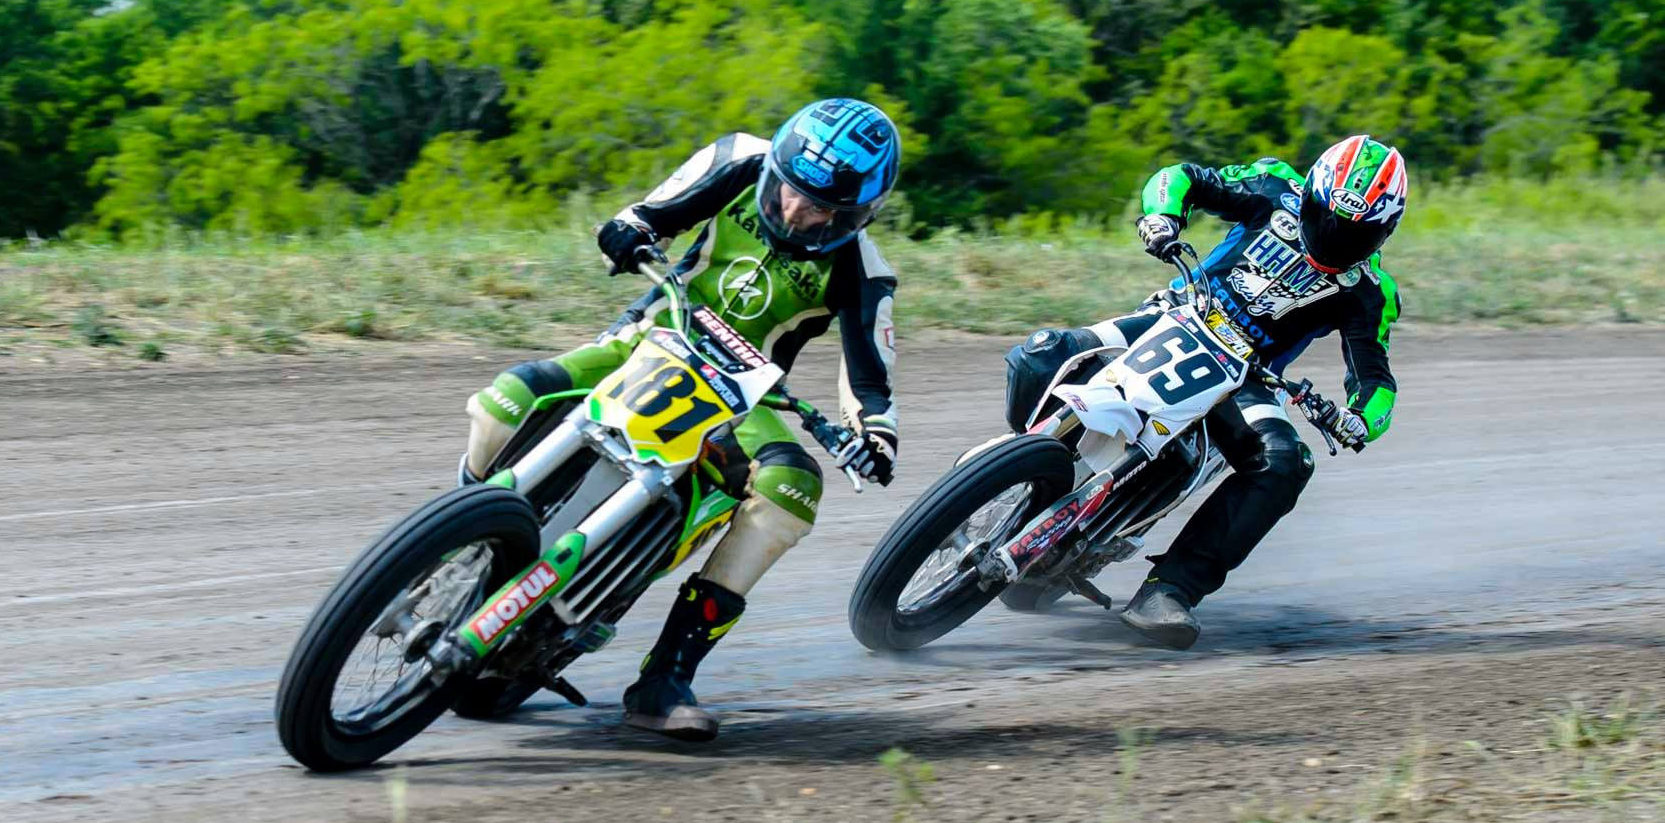 Max Whale (181) and Dallas Daniels (69) during a Vintage Dirt Track Racing Association (VDTRA) event. VDTRA is the predecessor of Xtreem Flat Track. Photo by Ken Kerr, courtesy of Xtreem Flat Track.